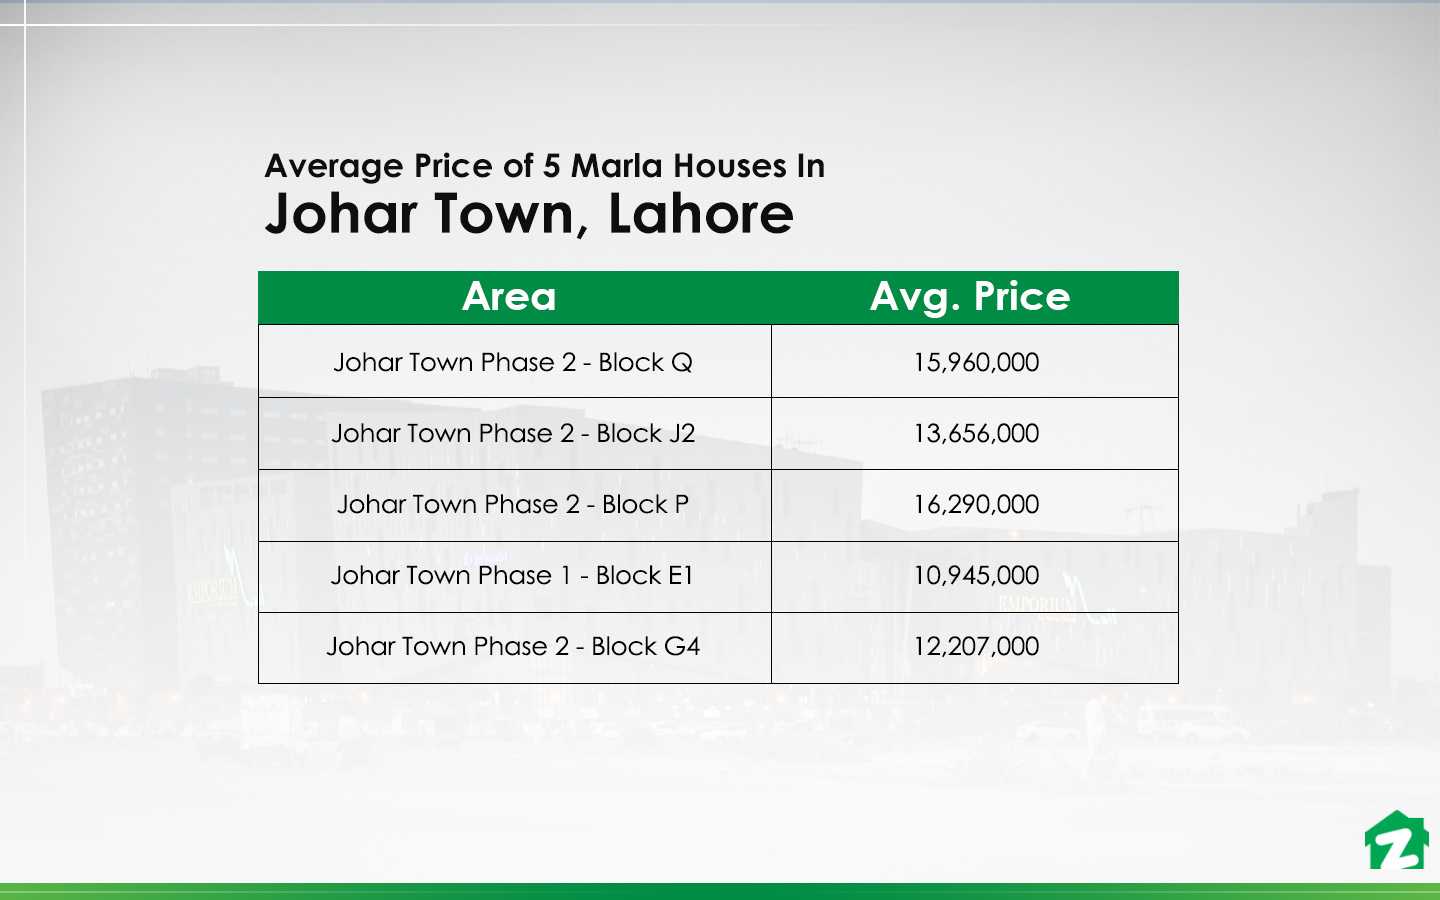 5 Marla House Prices In Johar Town, Lahore